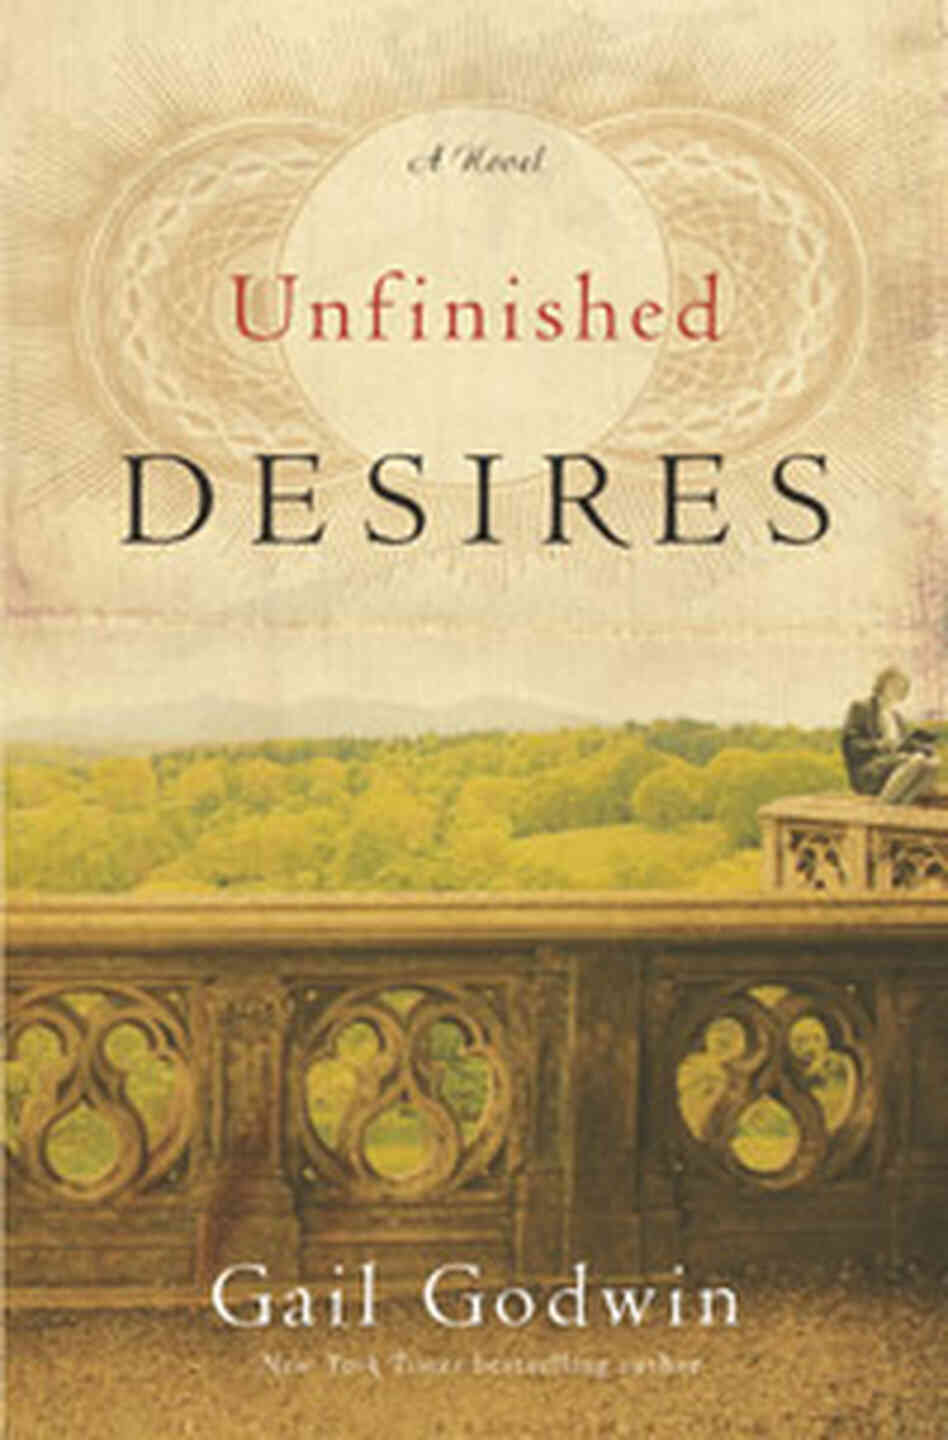 c: 'Unfinished Desires'